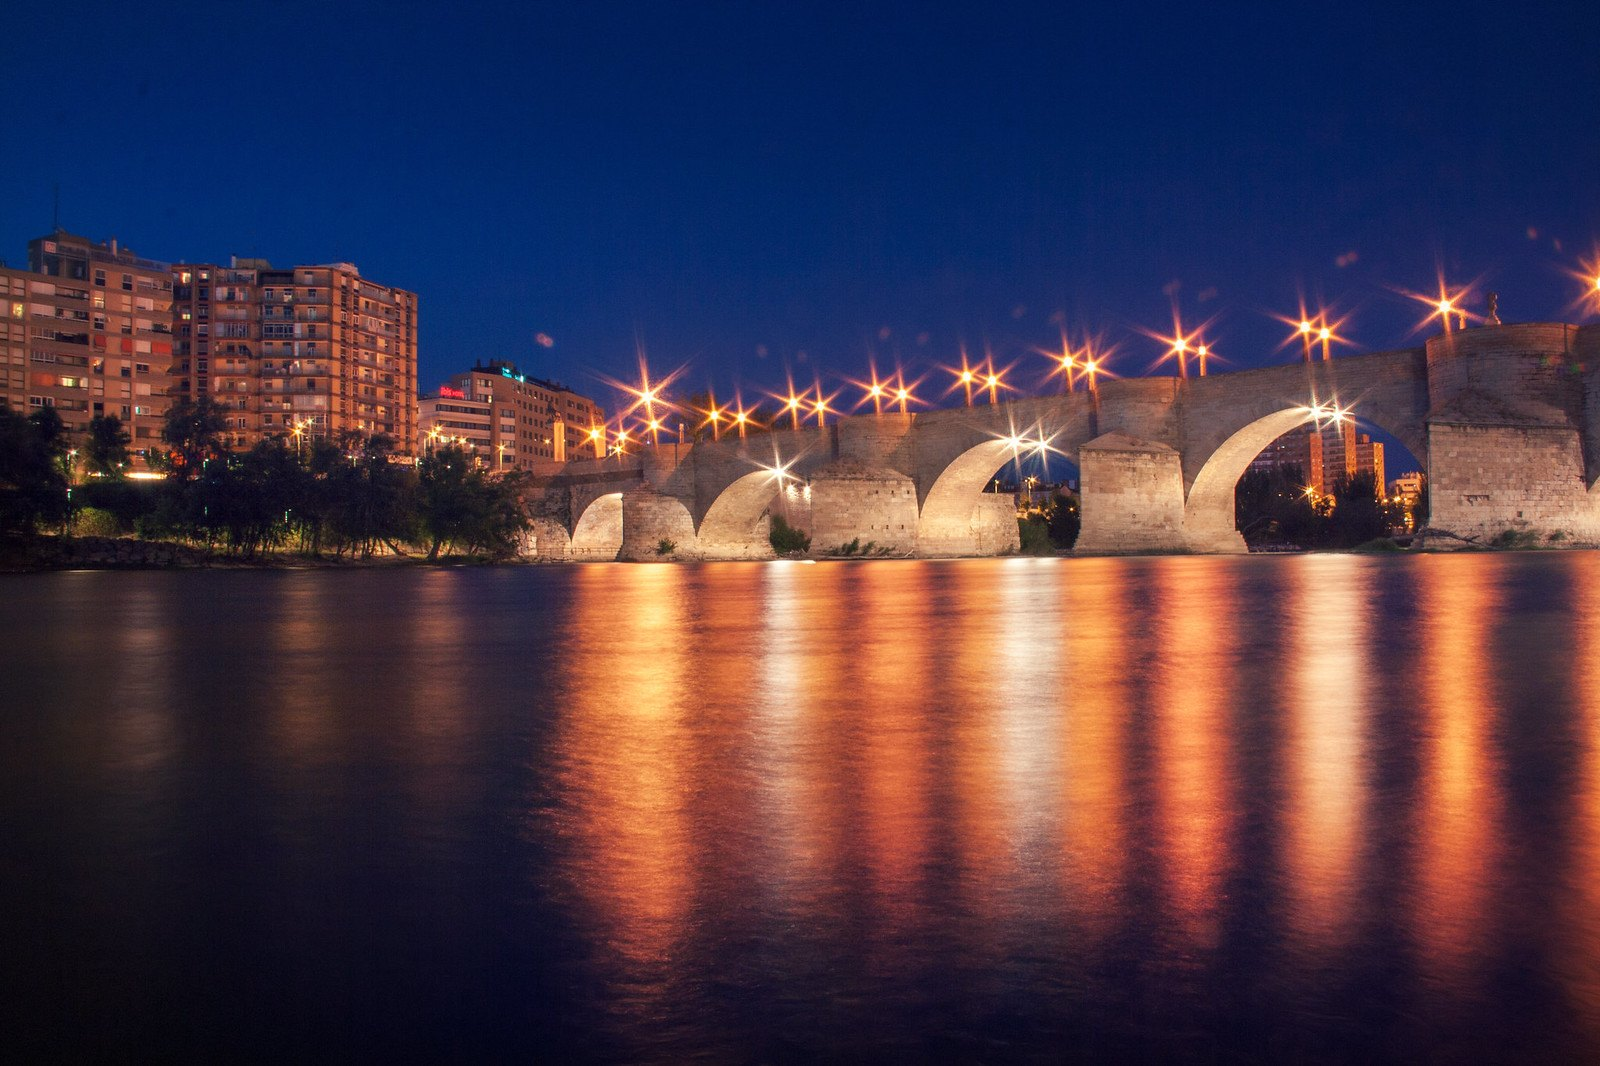 Weekend trip to Zaragoza, Spain with a sample quick itinerary6